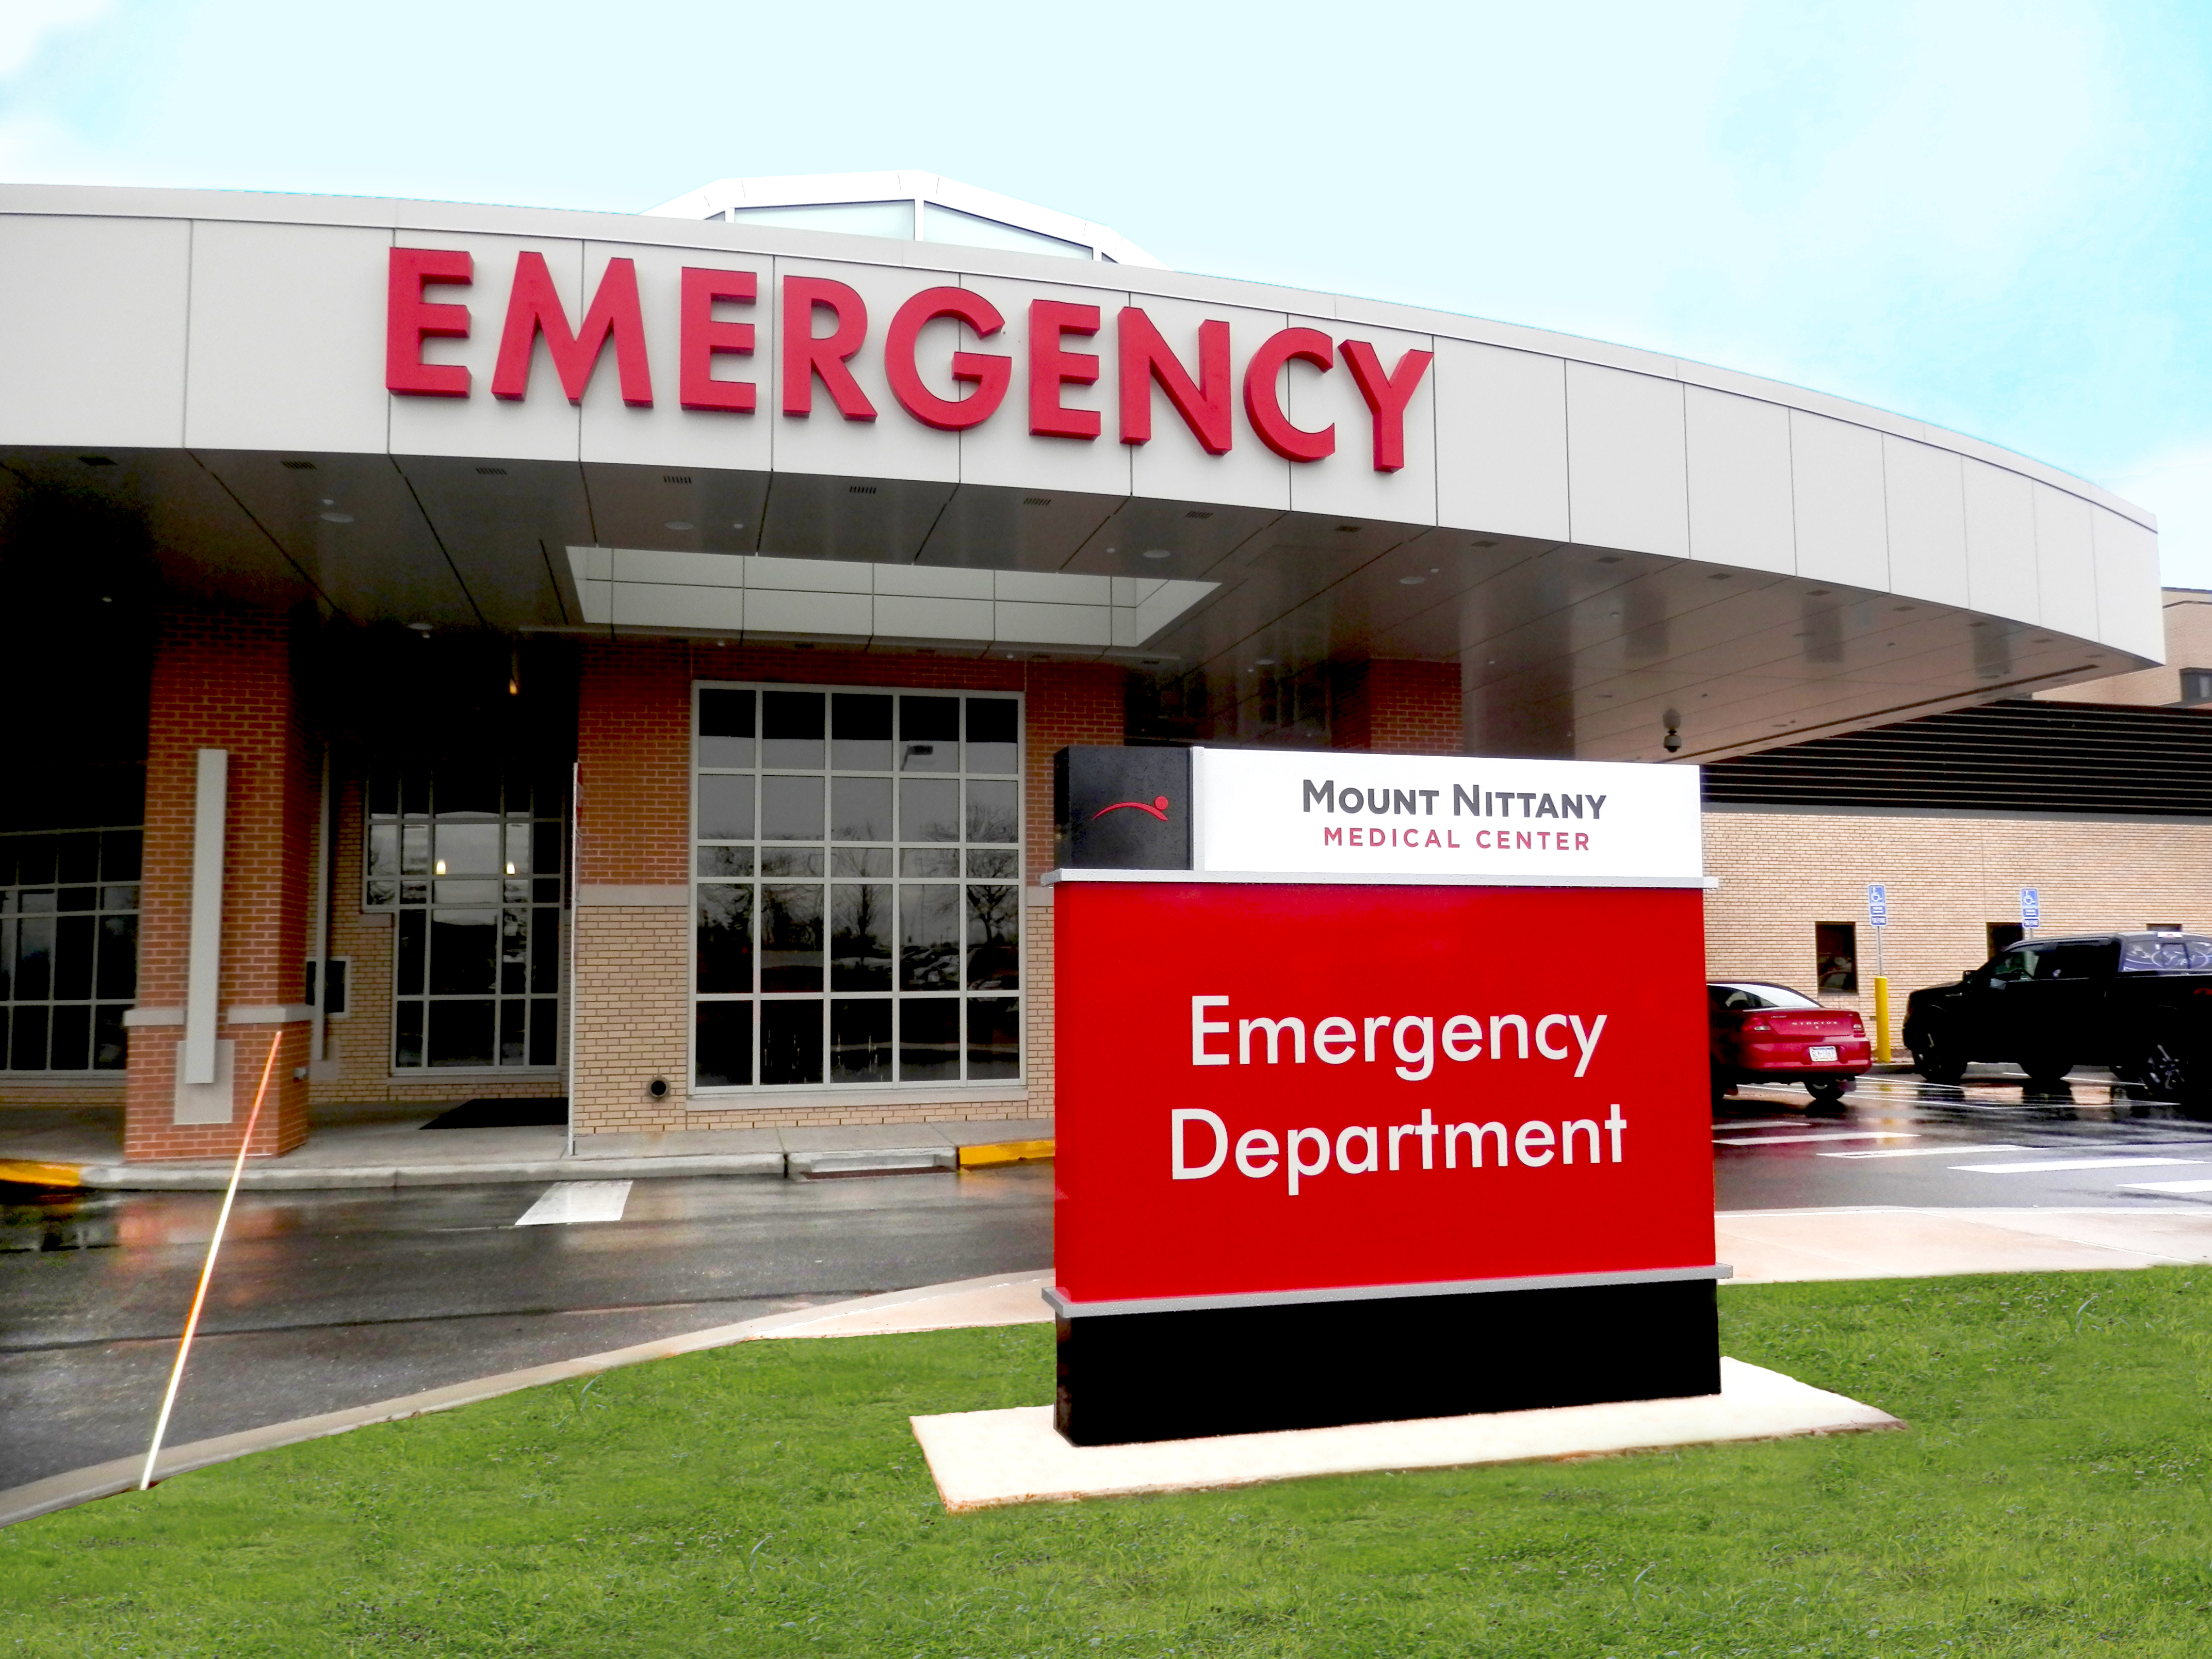 Mount Nittany Medical Center Emergency Department